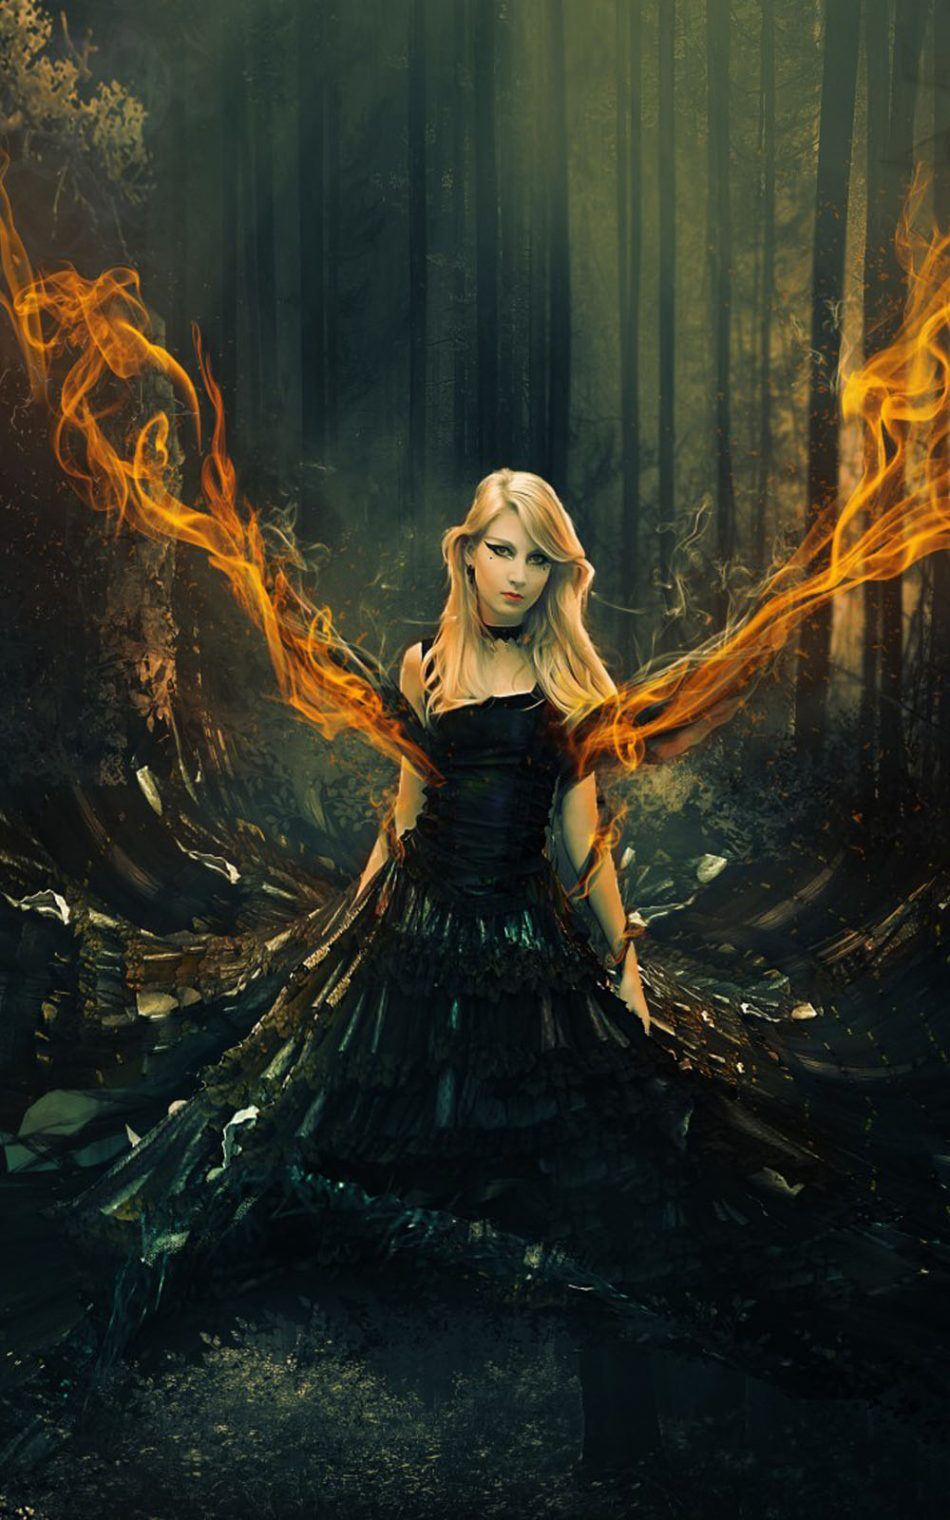 Fantasy Girl Flame Forest Surreal HD Mobile Wallpaper